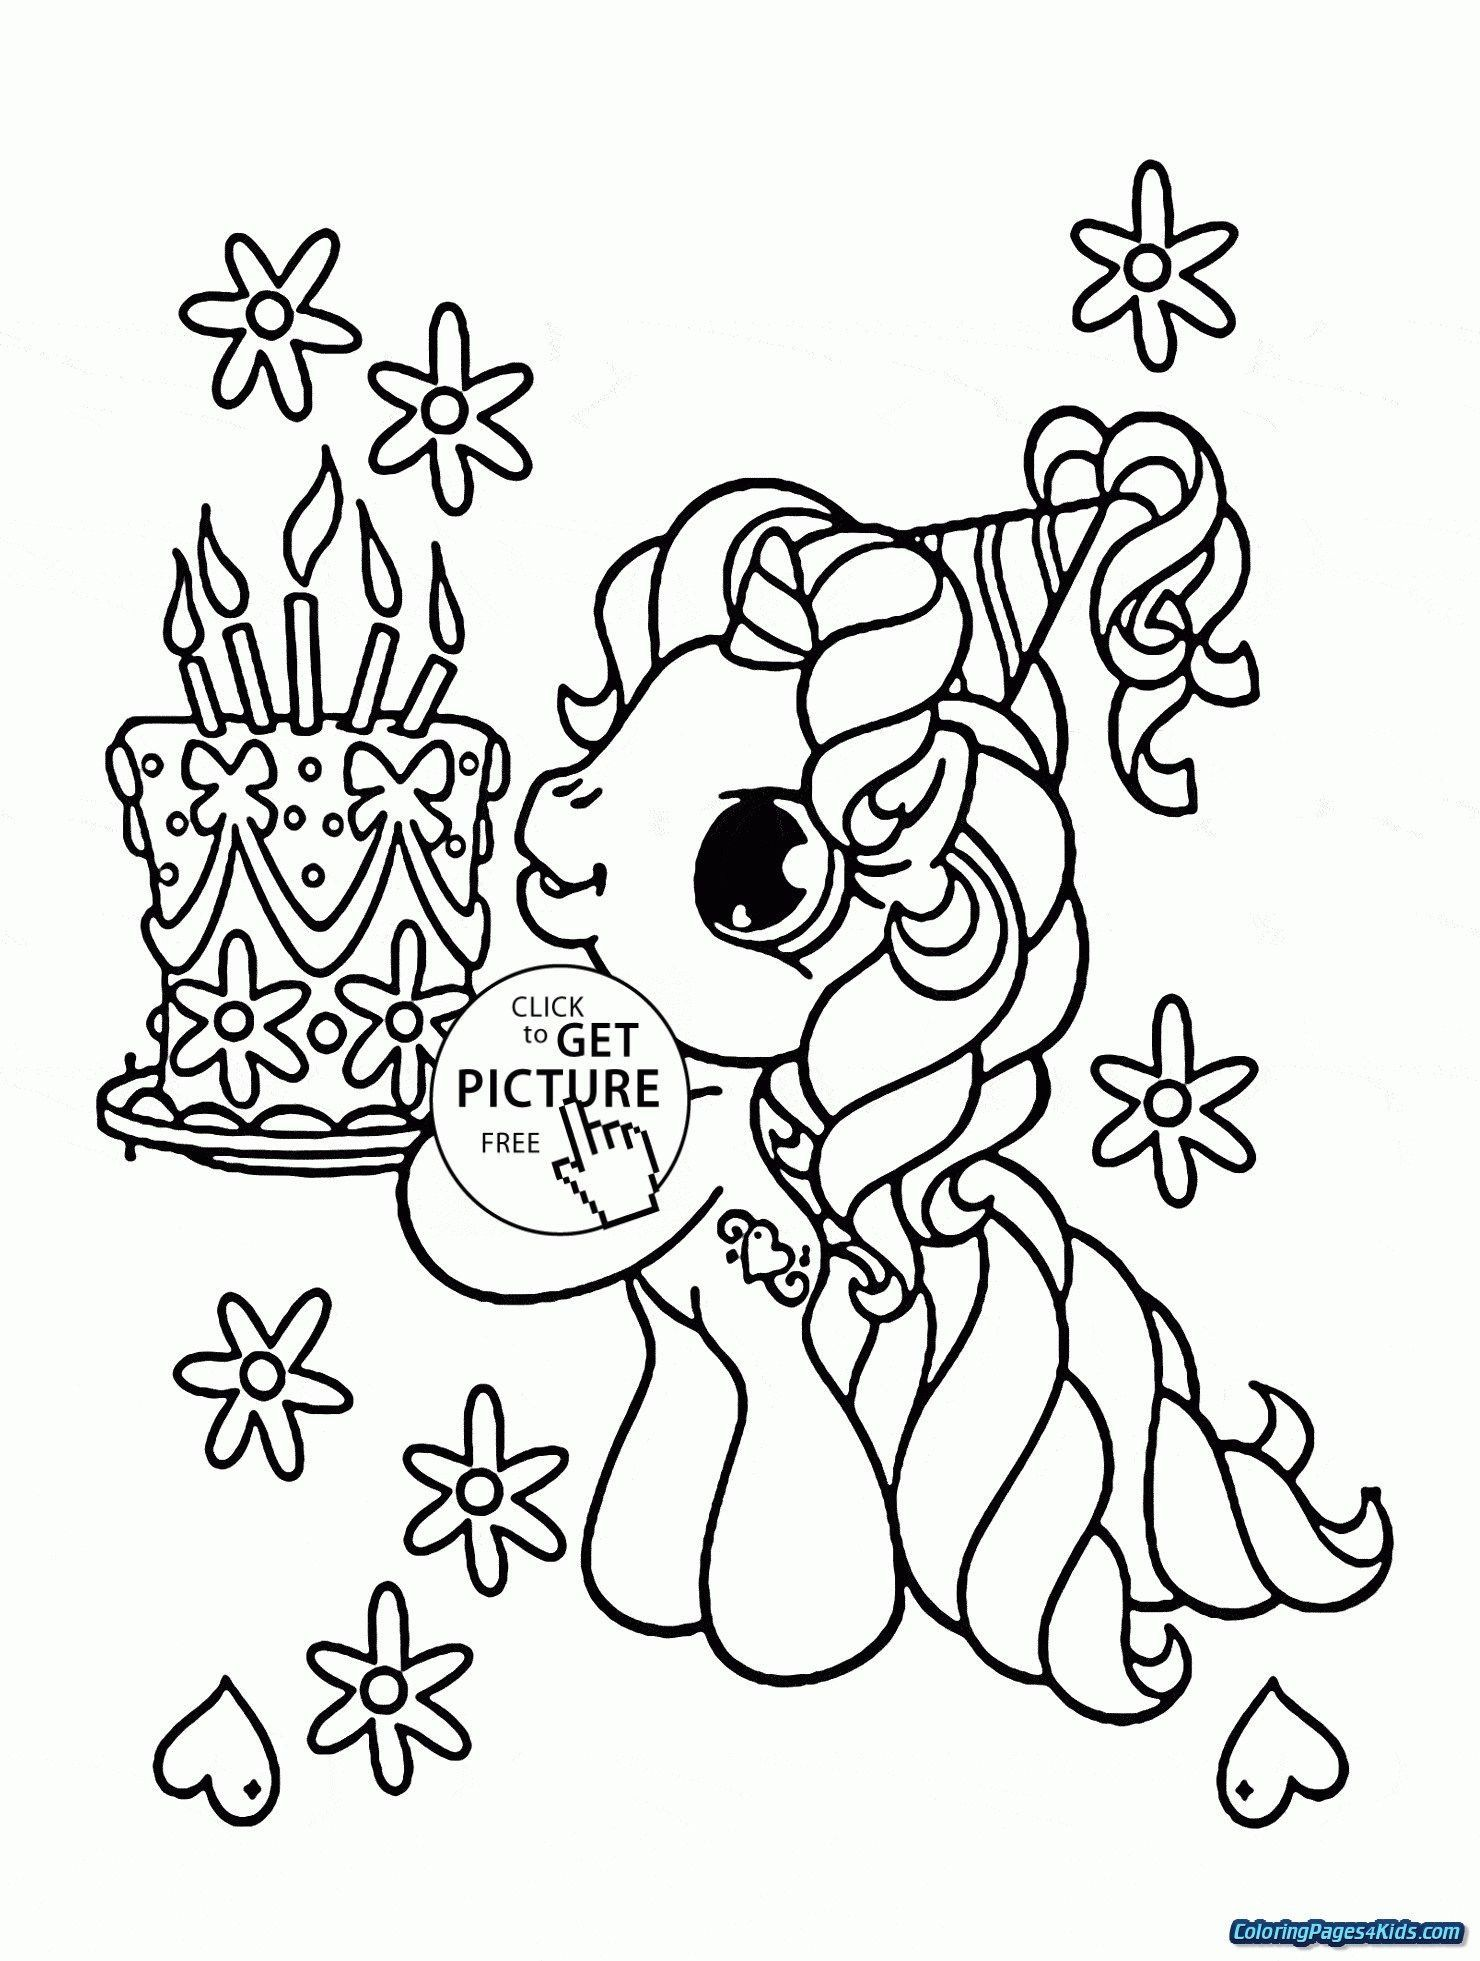 Happy 16th Birthday Coloring Pages Coloring Pages Marvelous Birthday Cake Coloring Unicorn Coloring Pages Birthday Coloring Pages Happy Birthday Coloring Pages